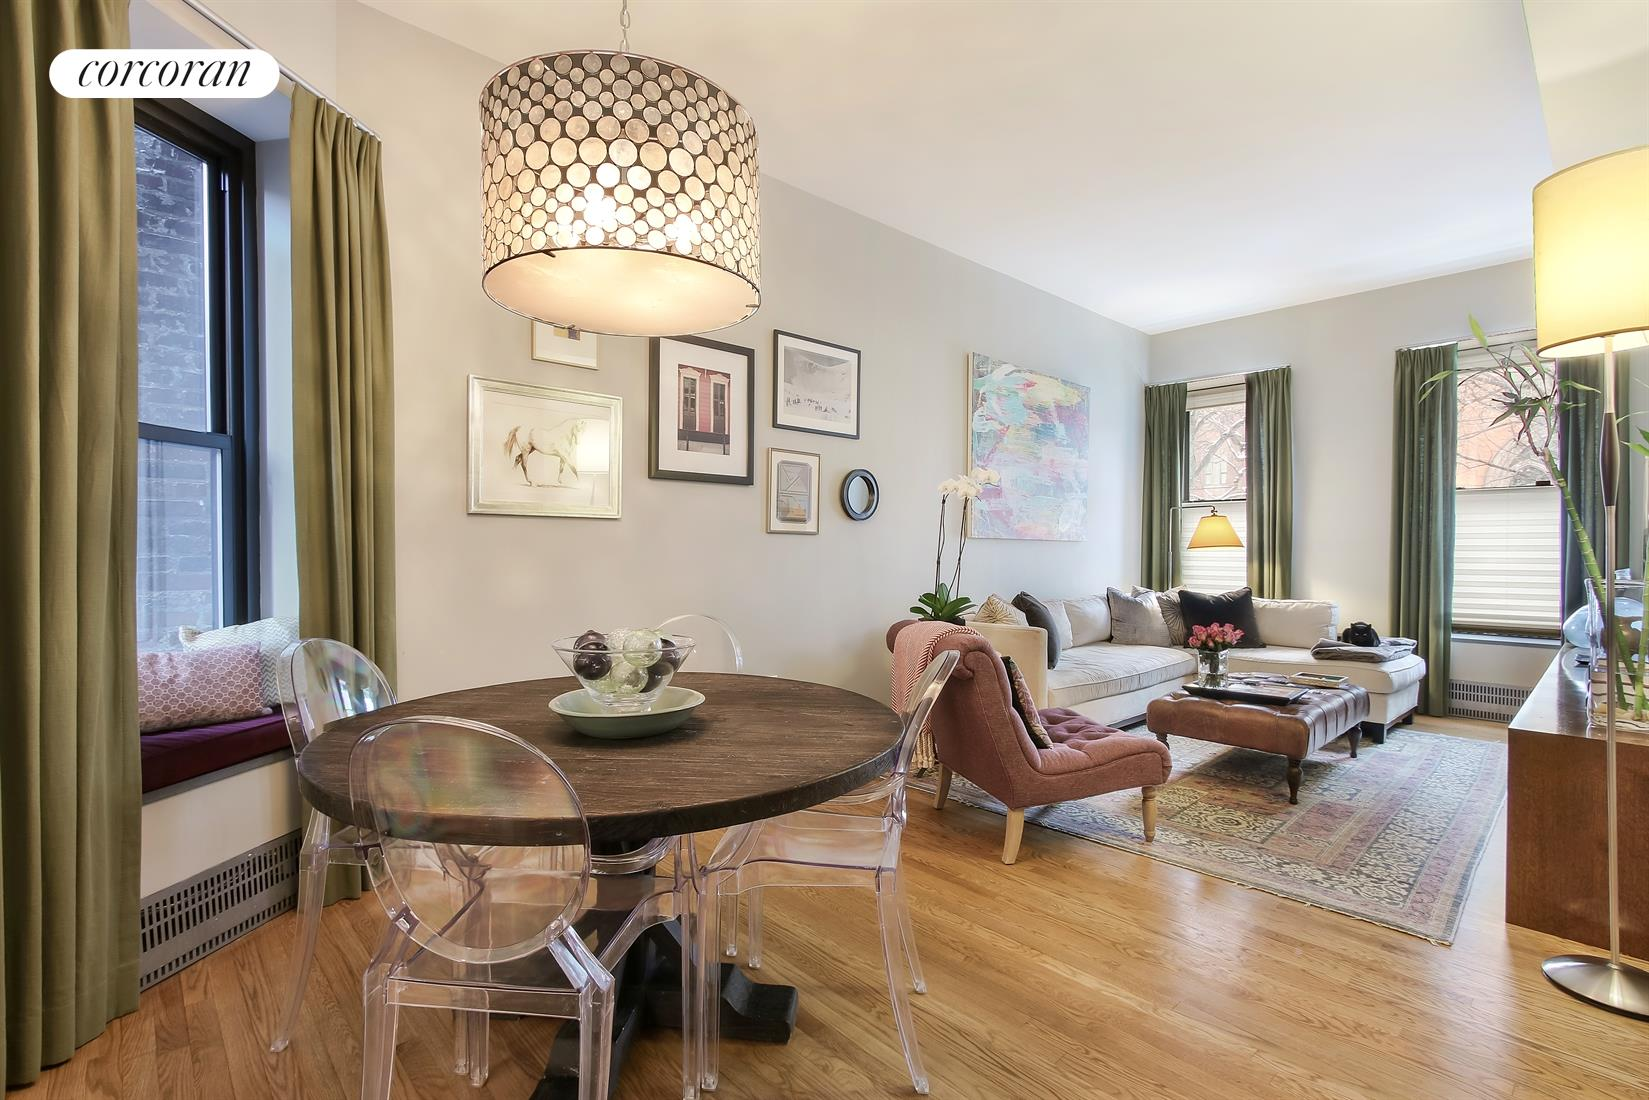 422 W 20TH ST PARLOR A, New York, NY 10011